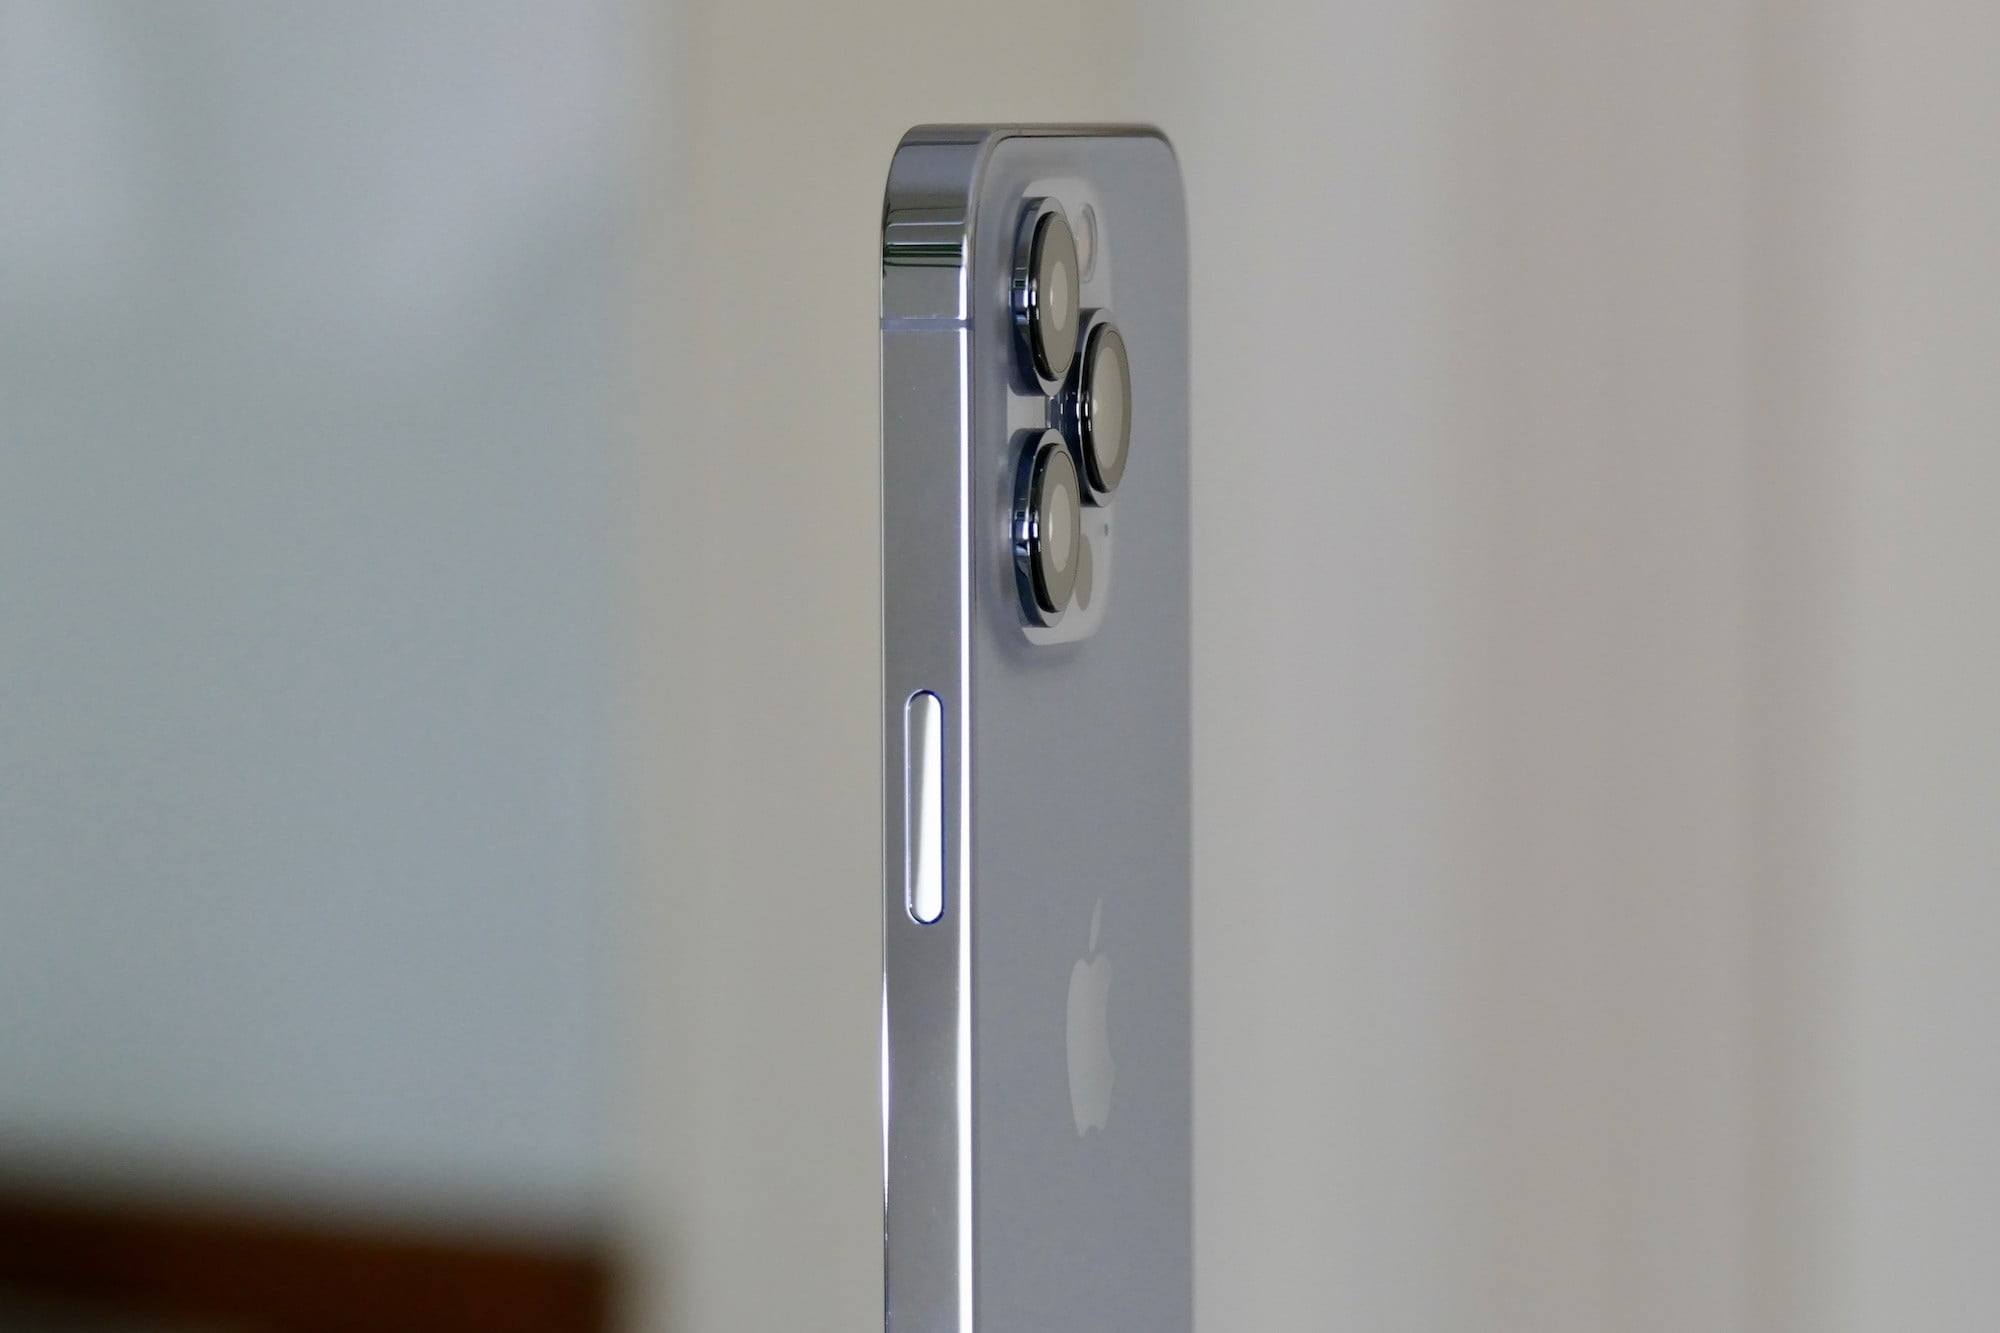 The iPhone 13 Pro's camera module seen from the side.